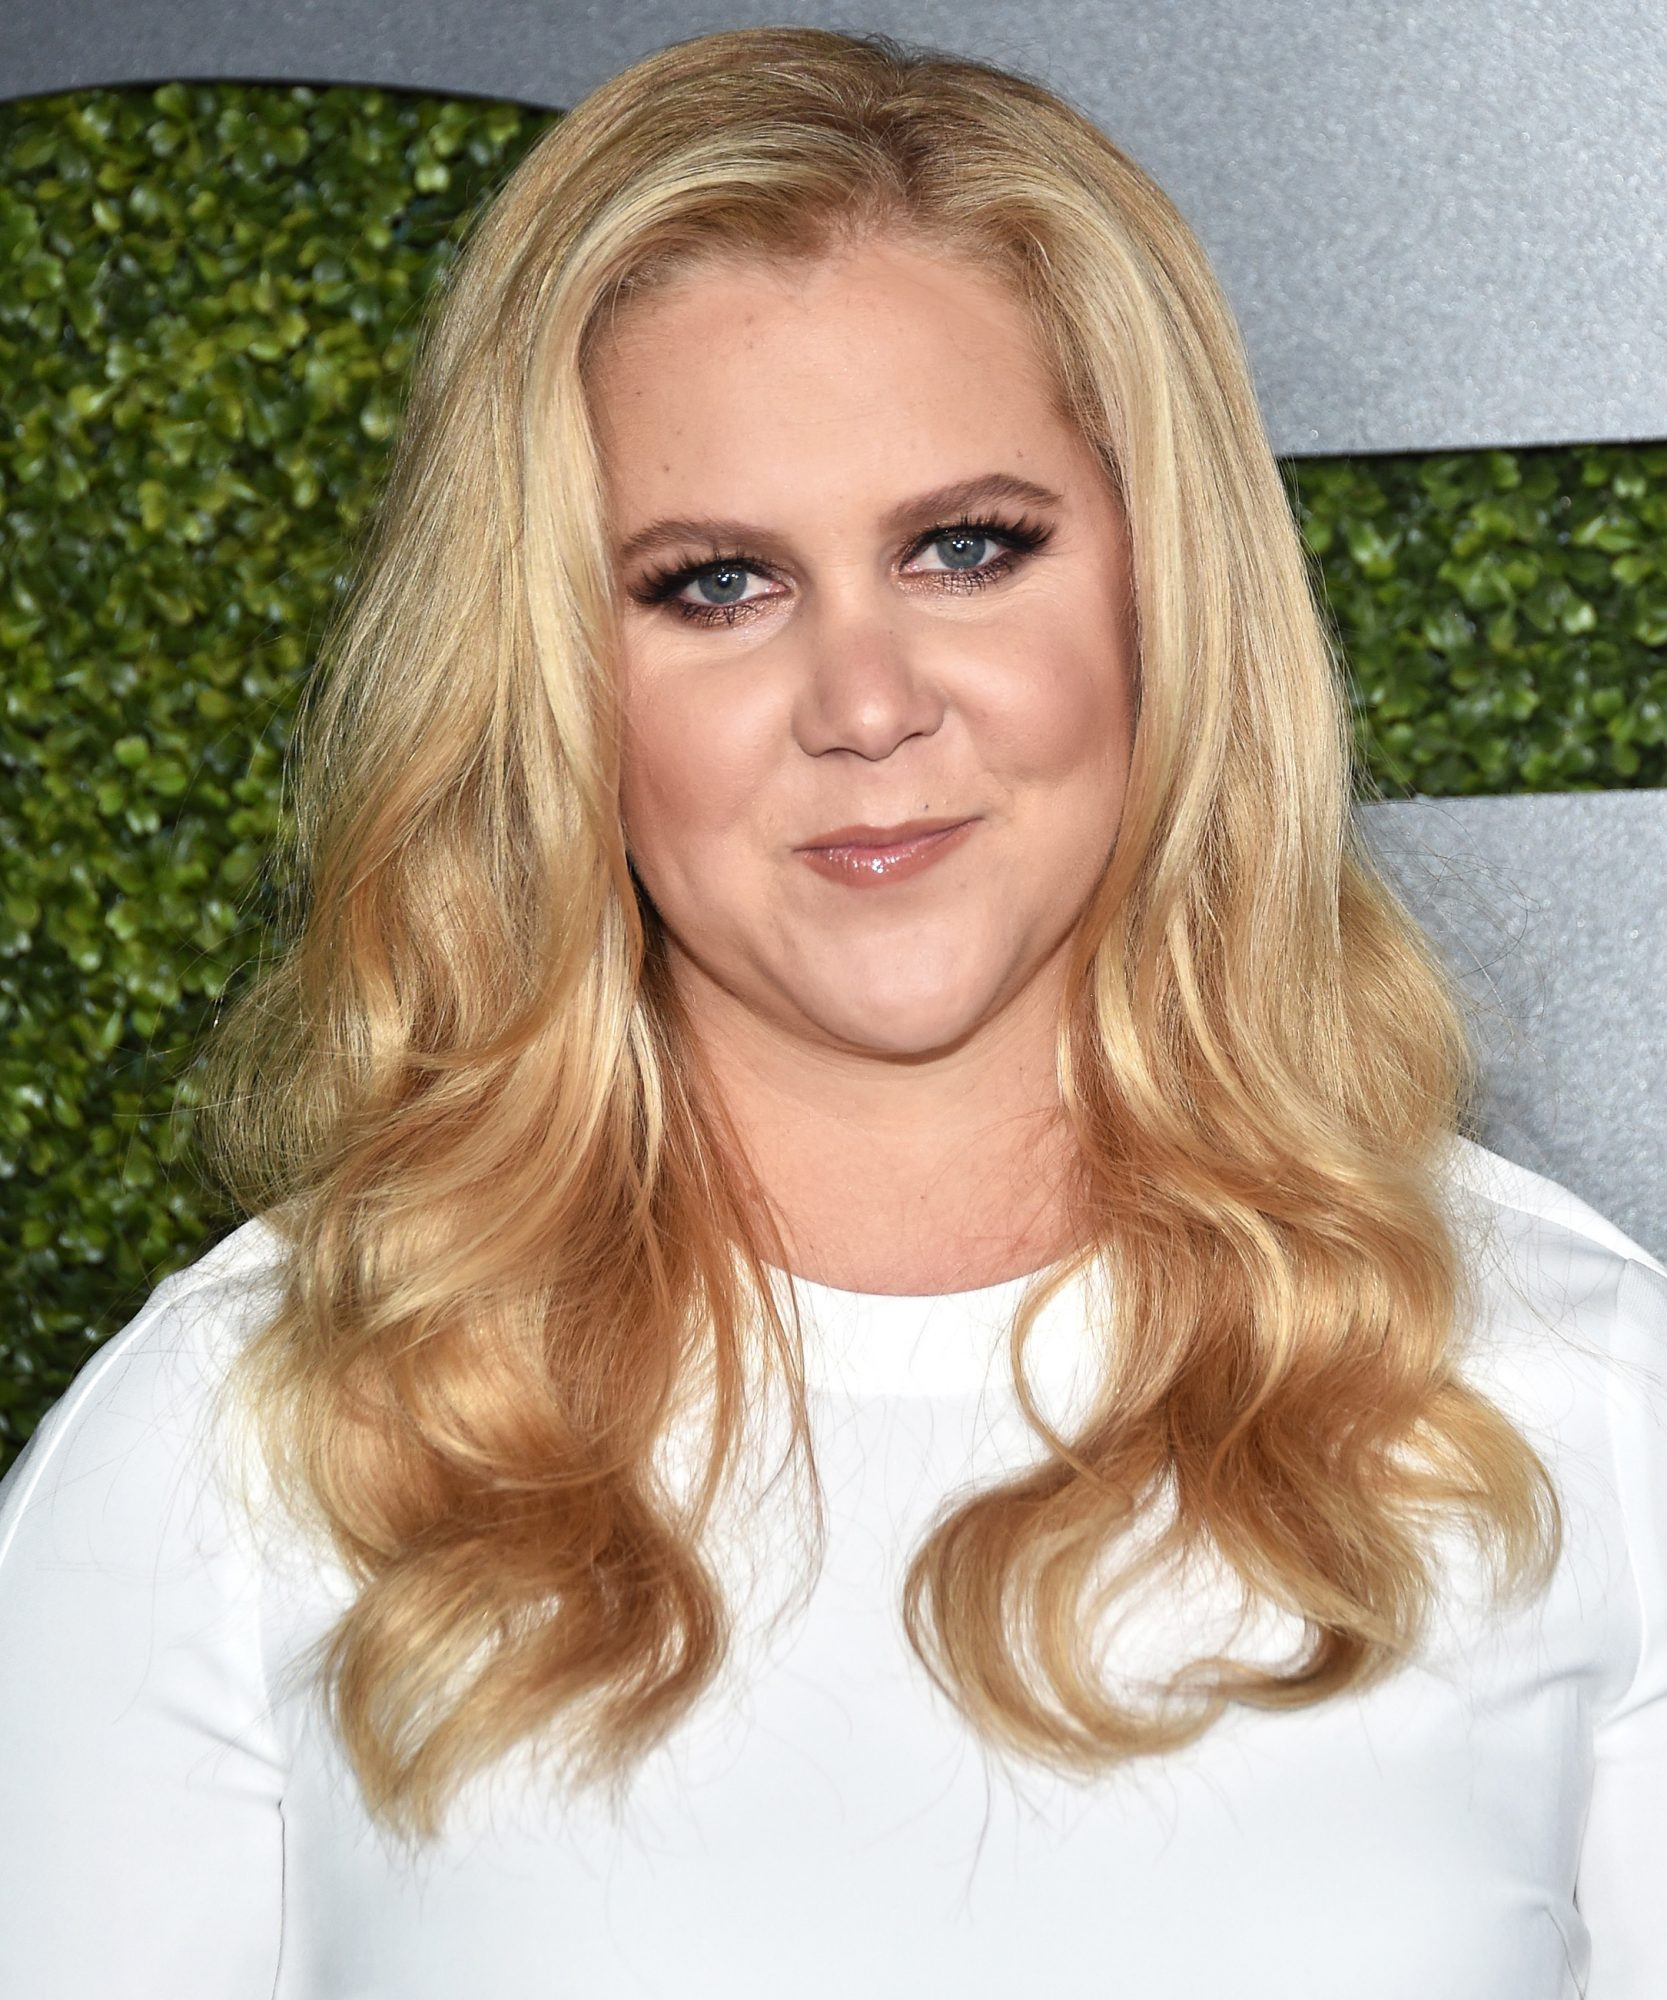 Amy Schumer's Tropical Vacay Consists of Two Things: Flawless Bikinis and an Adoring Beau